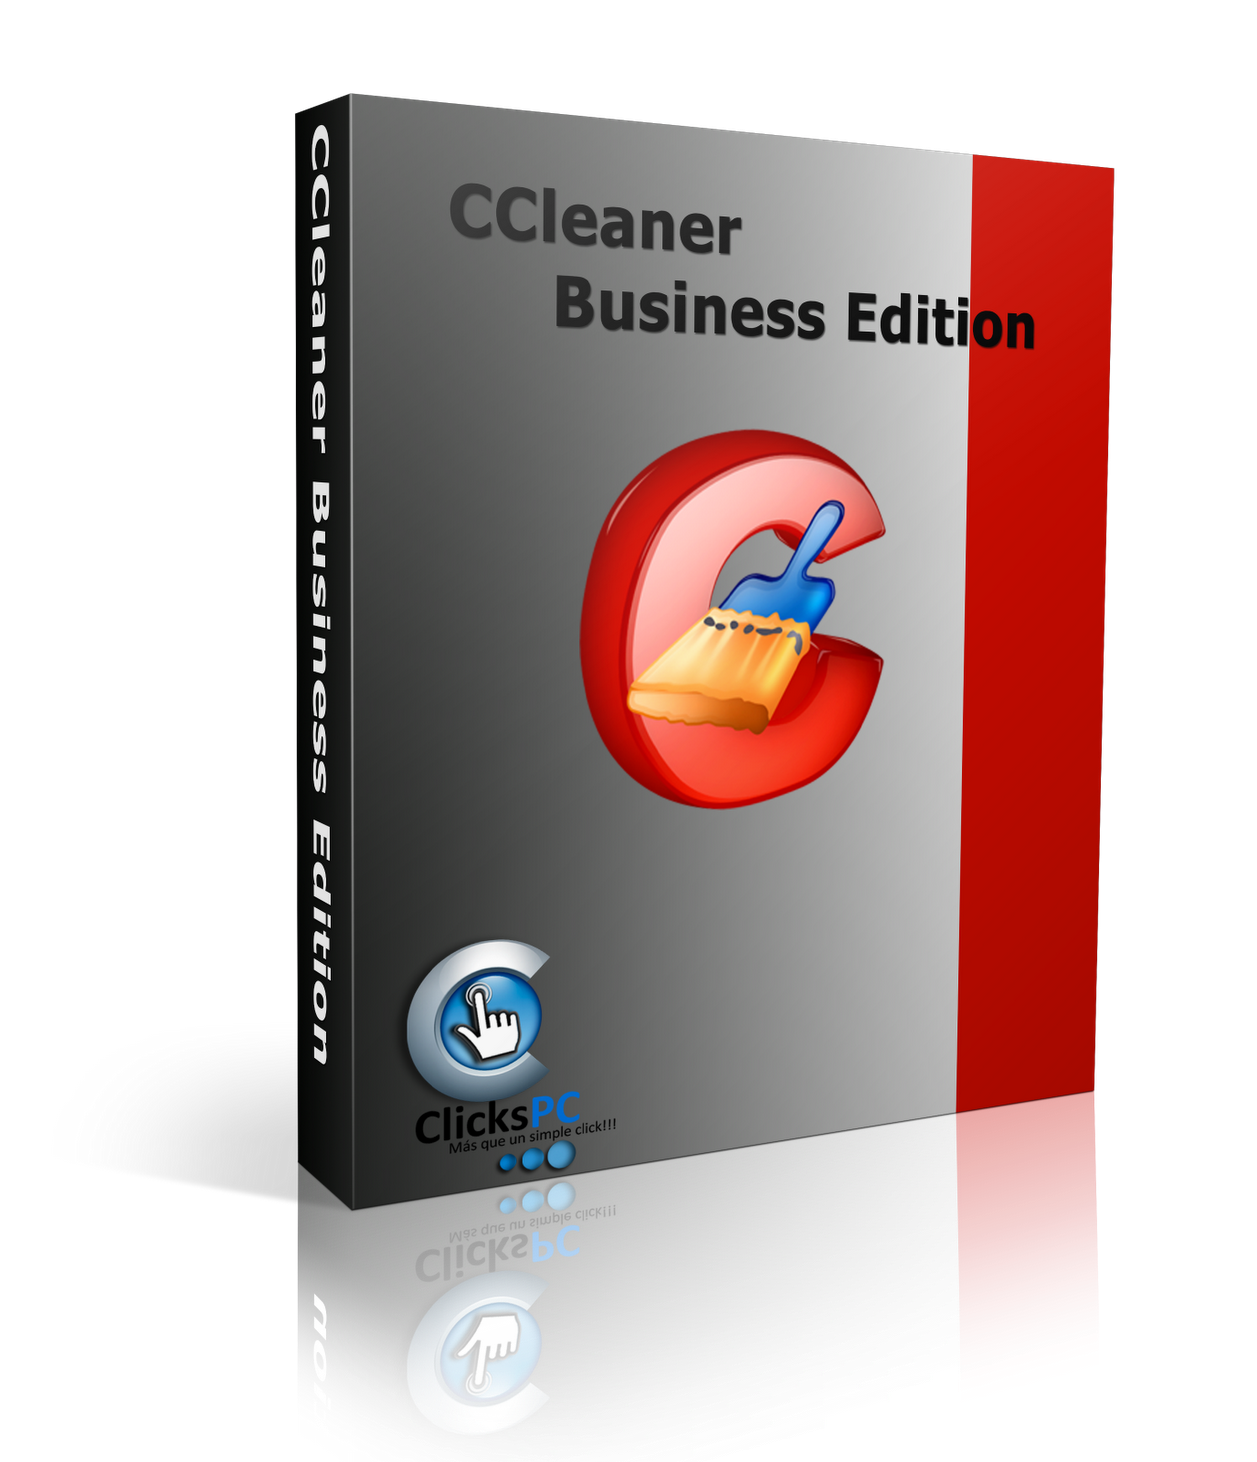 CCleaner Business Edition 3.17.1688